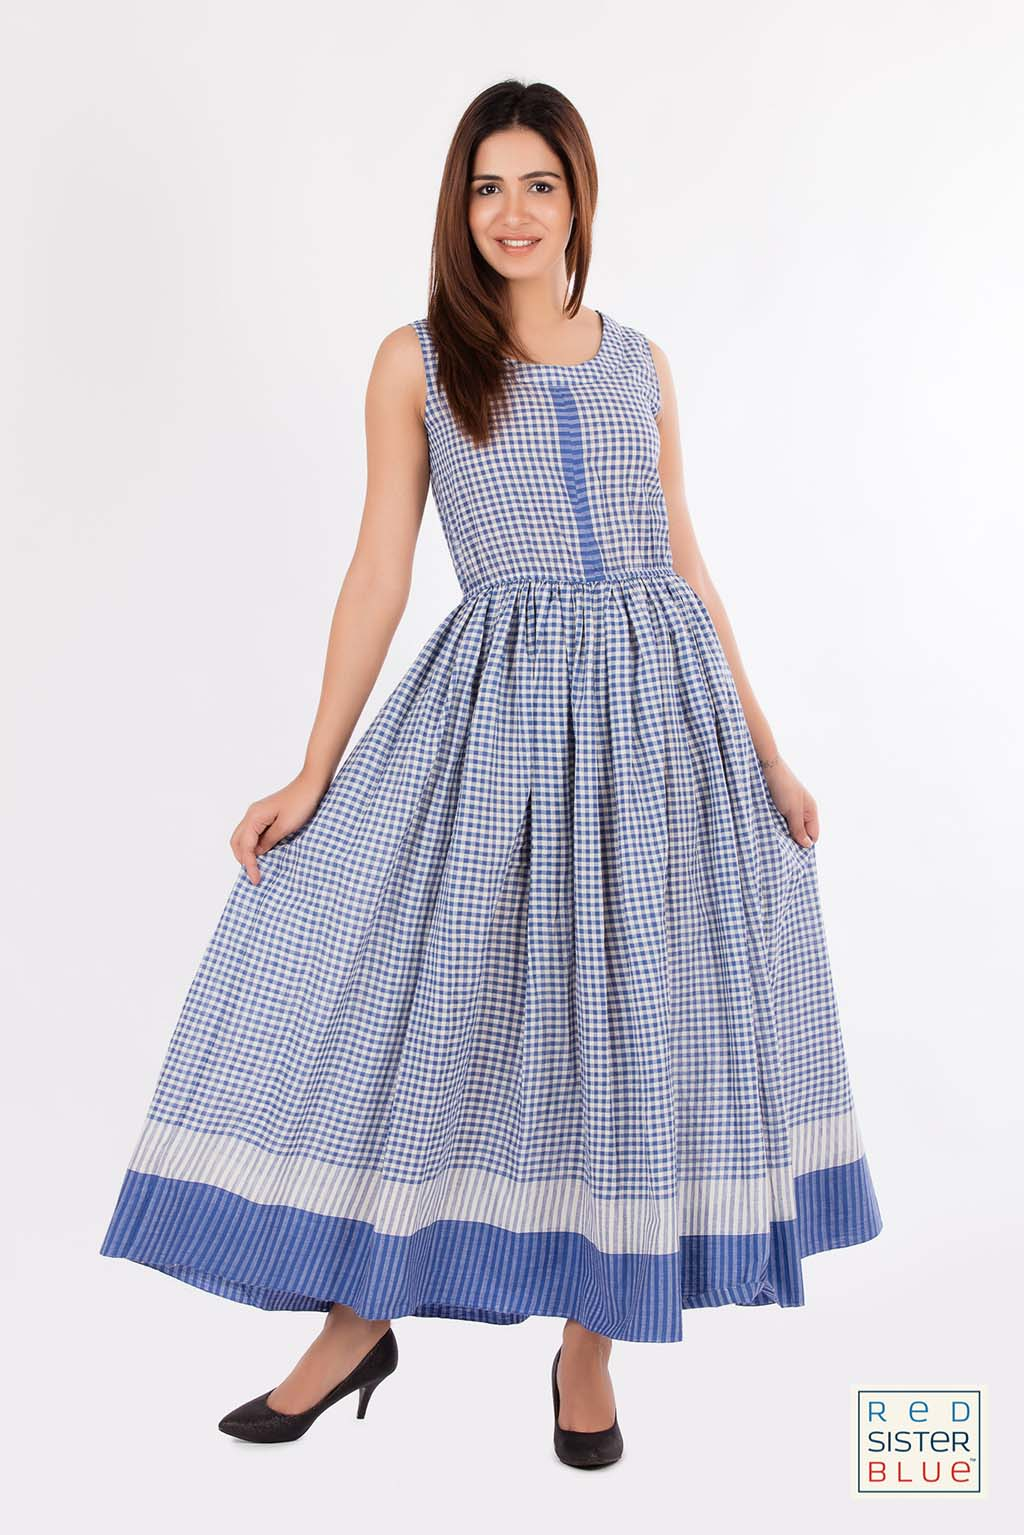 Khadi checkered maxi dress - Sold by Red Sister Blue